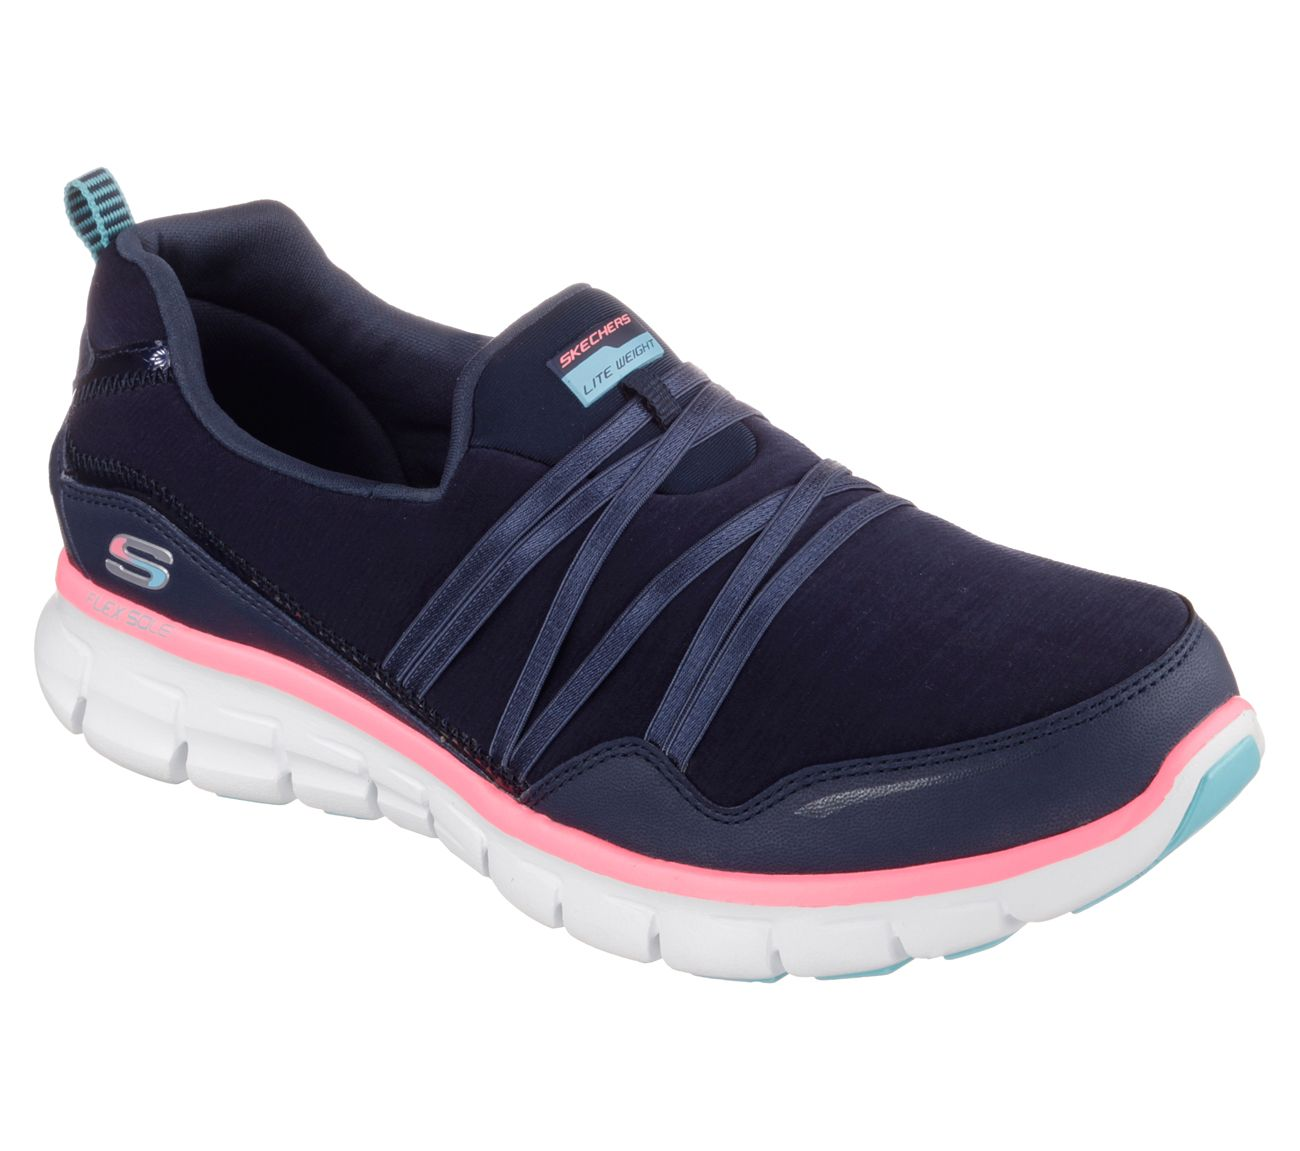 Zapatos Skechers Synergy para mujer